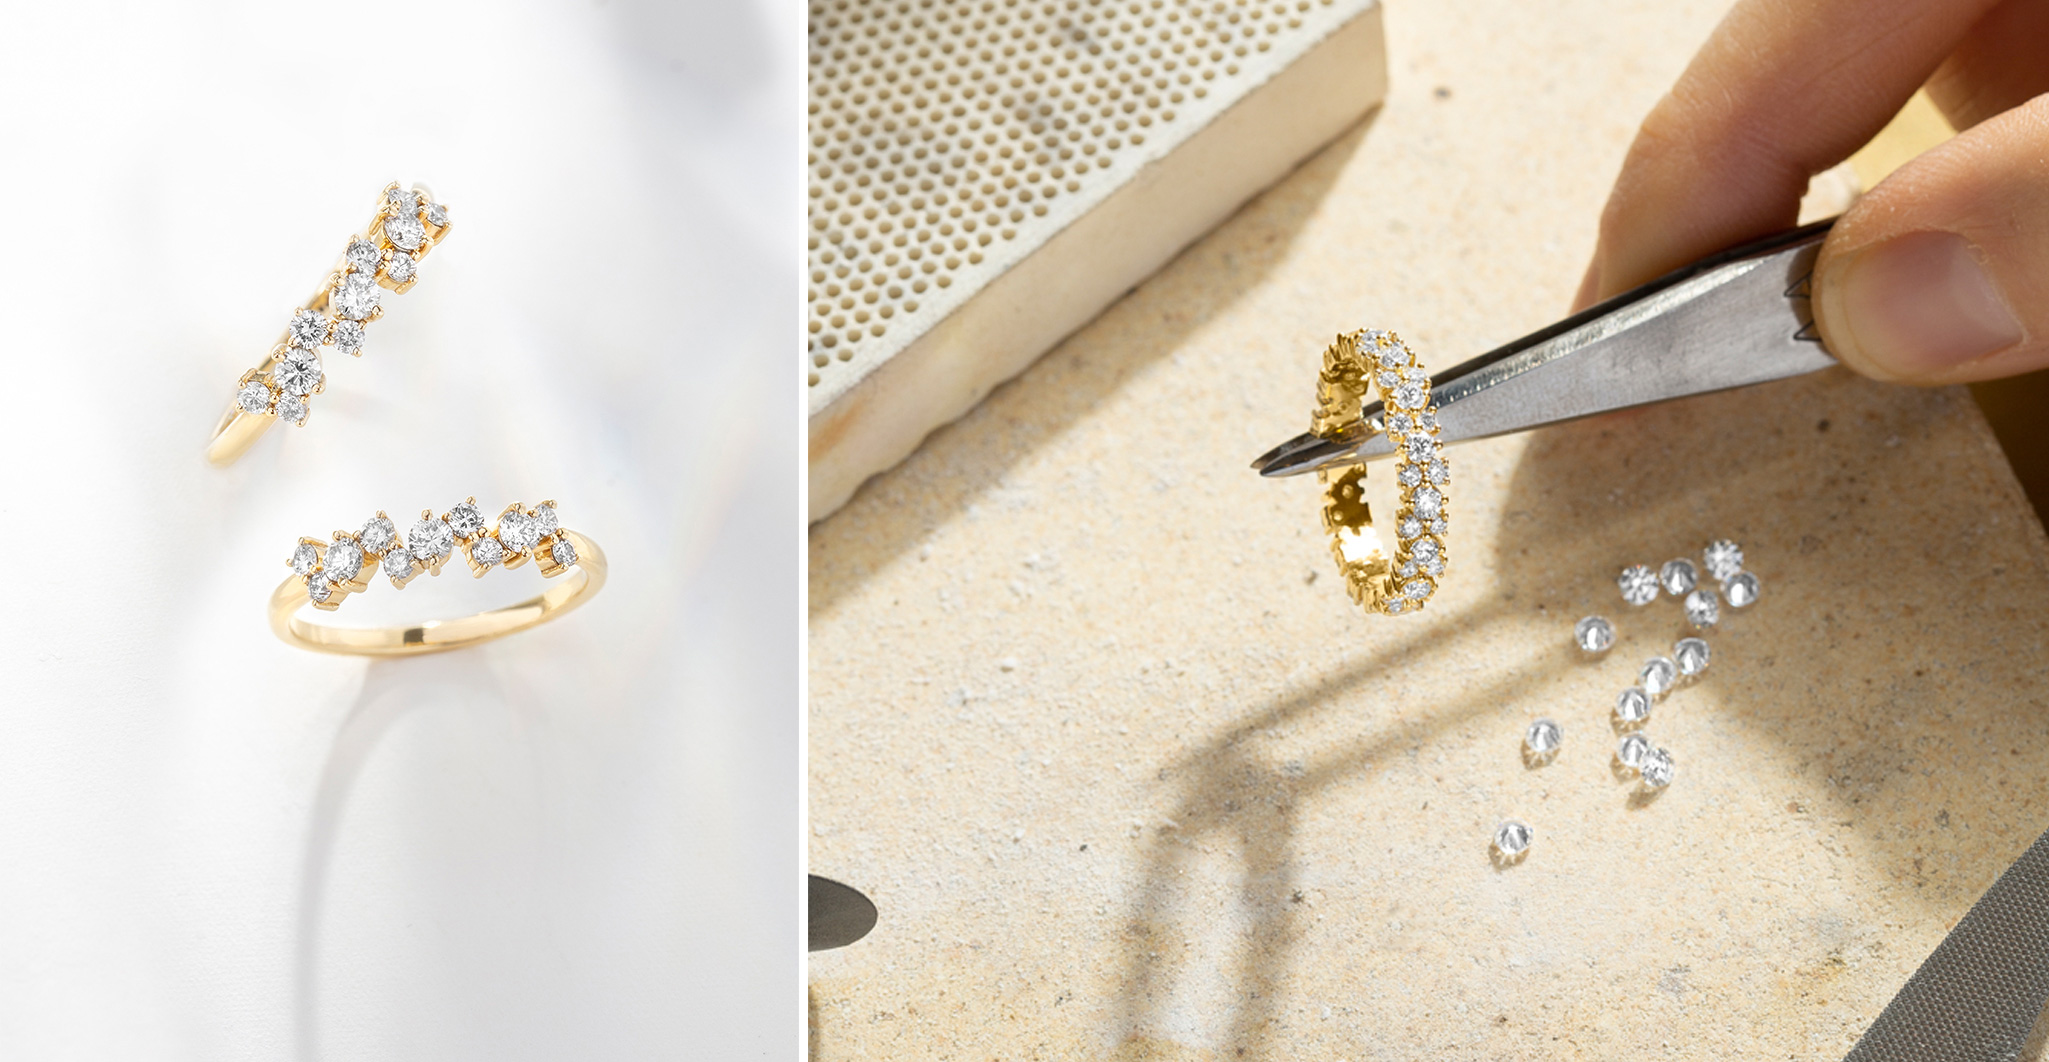 Two Ecksand Blossom Diamond Pavé Rings in the Ecksand Atelier